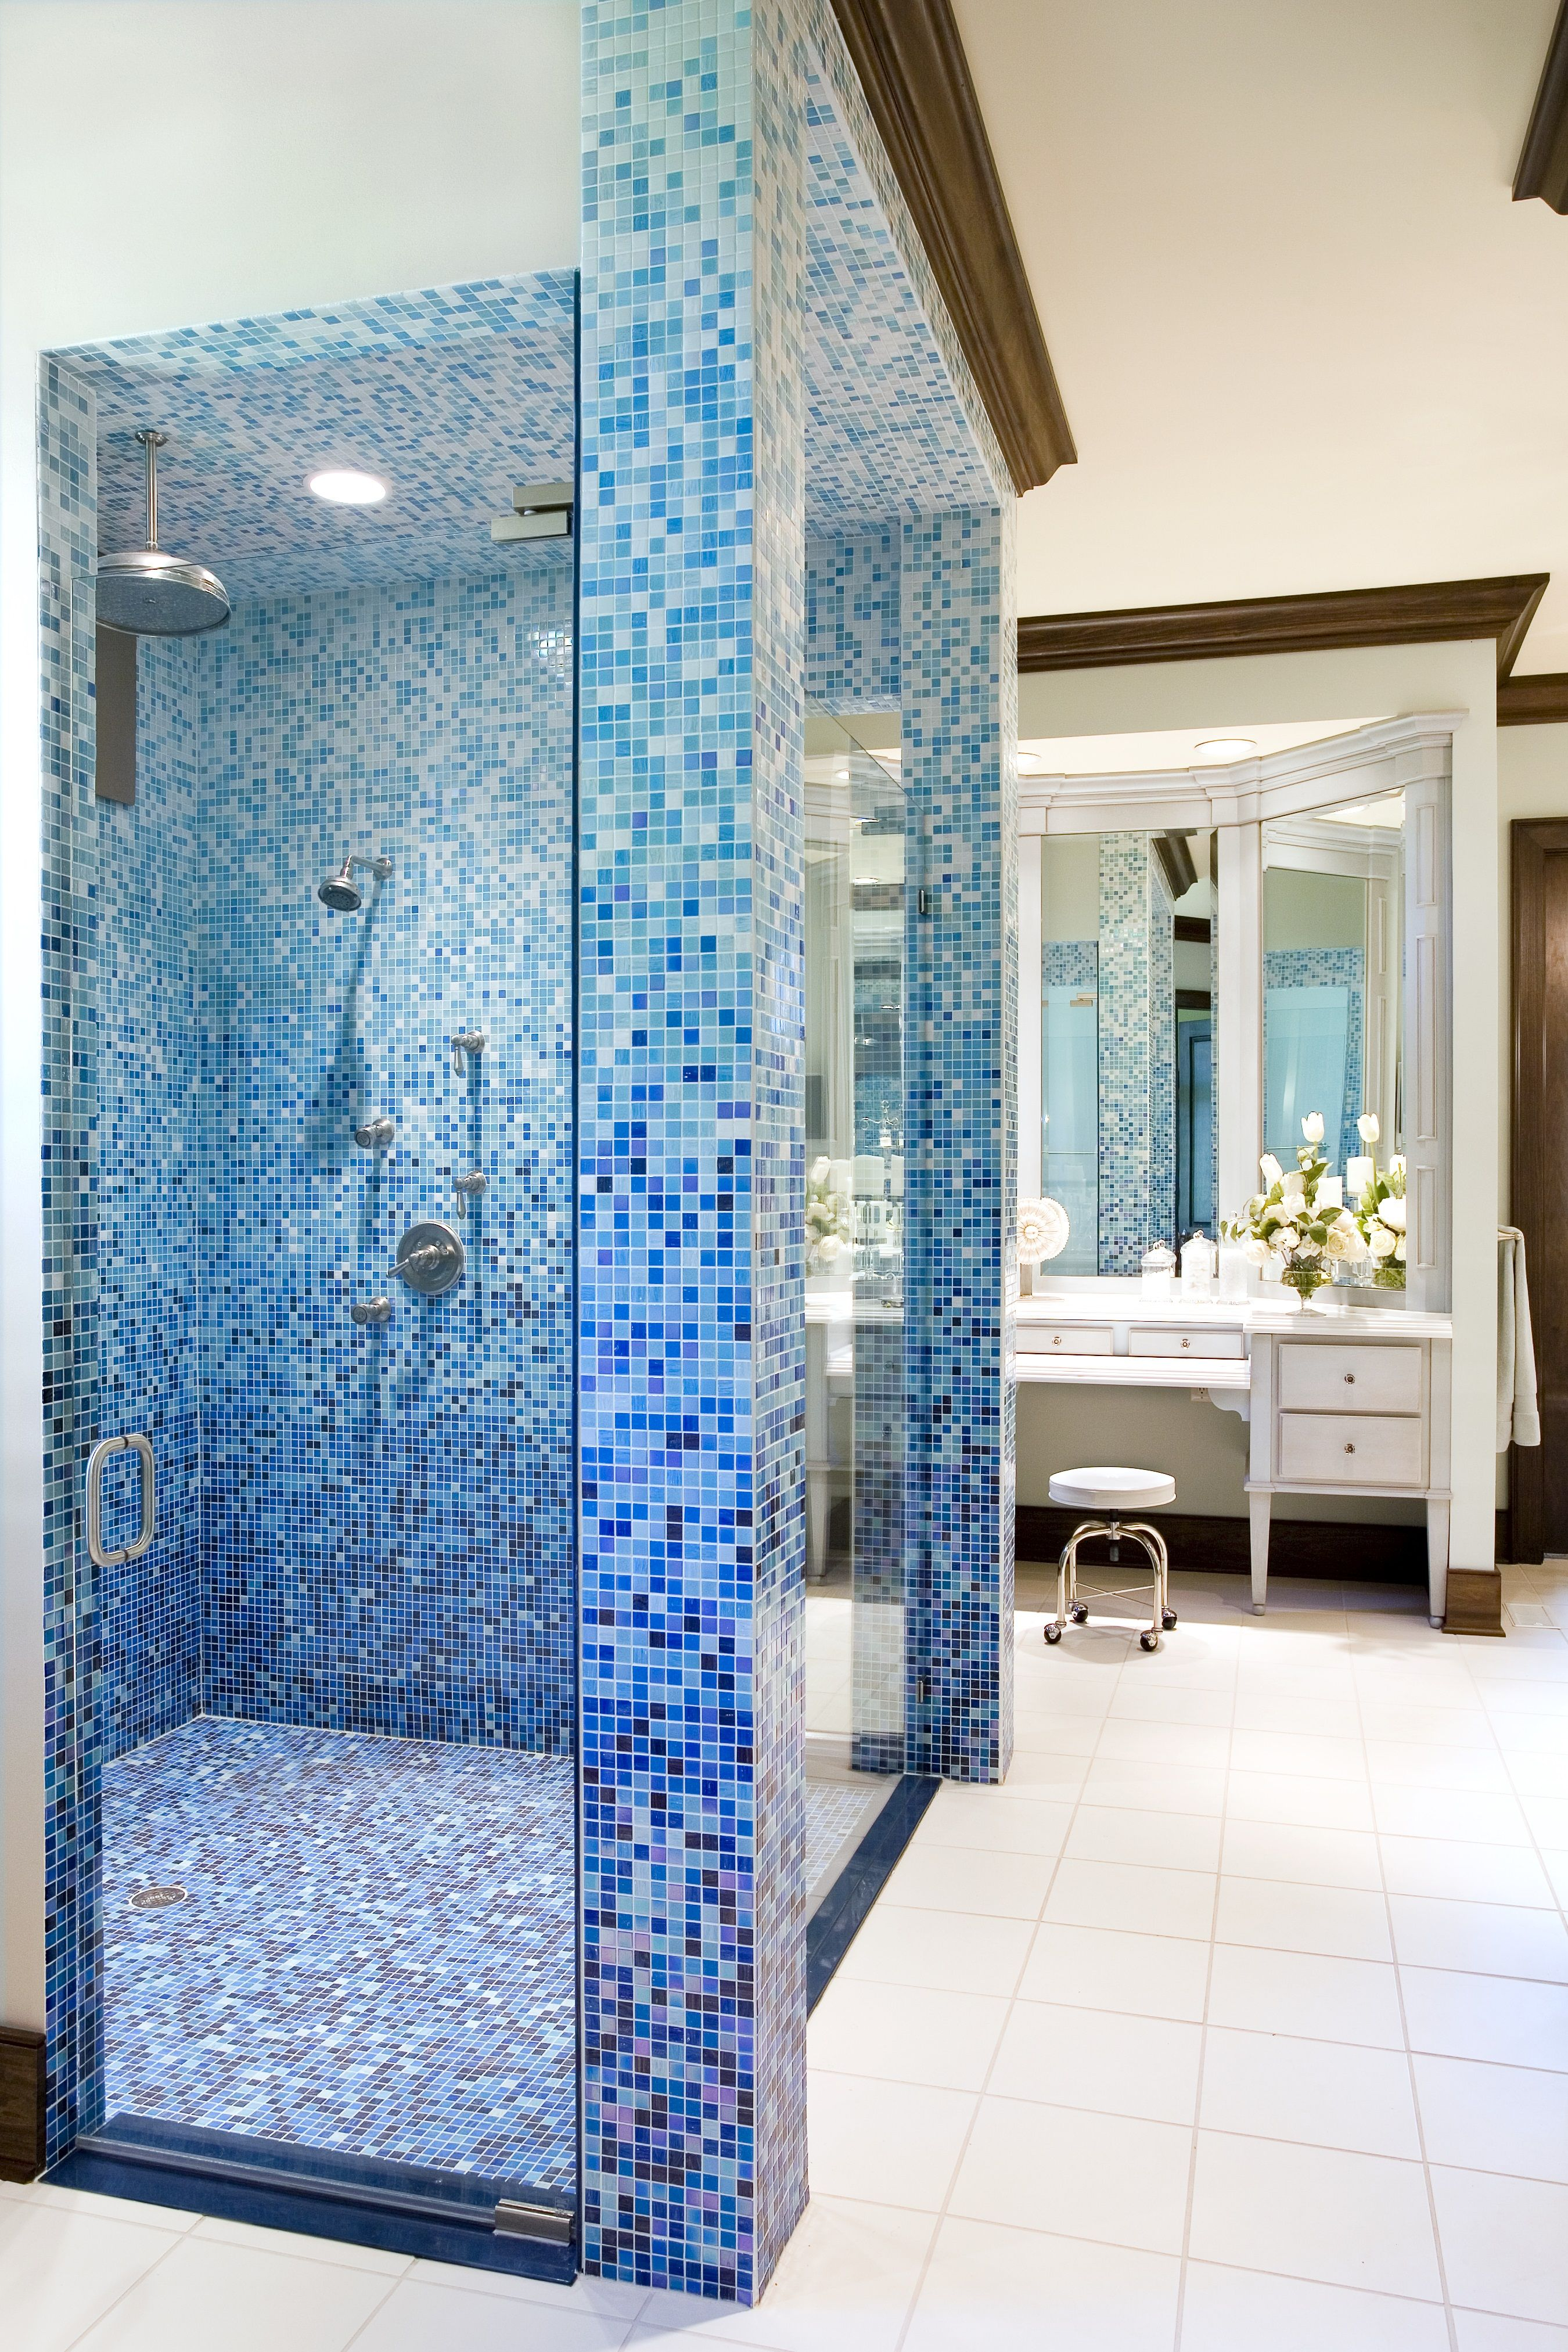 Bathroom, creative tile pattern - Designers: Kristin Okeley, ASID ...